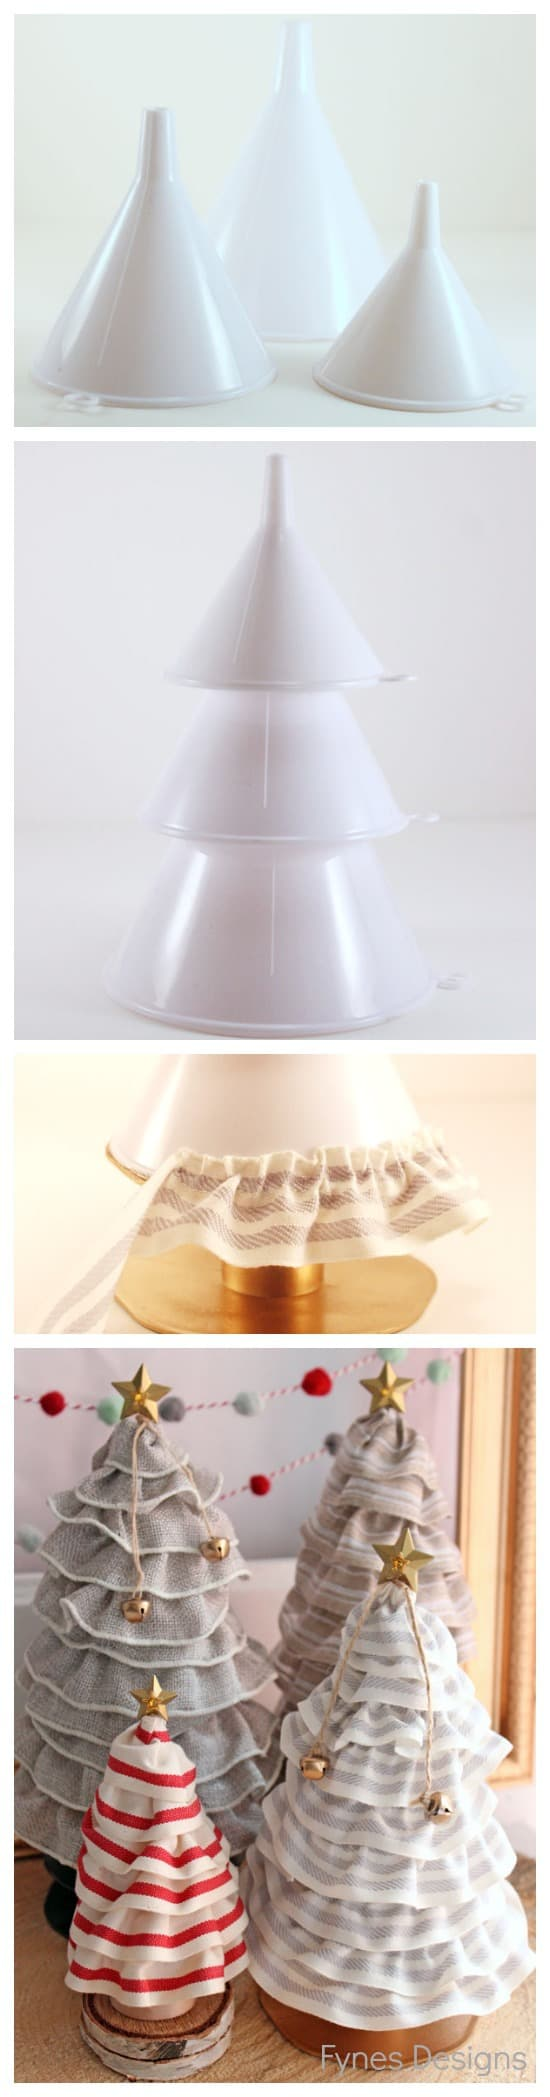 DIY Christmas Tree cones for ONLY 99¢. No more pricy styrofoam! from fynesdesigns.com